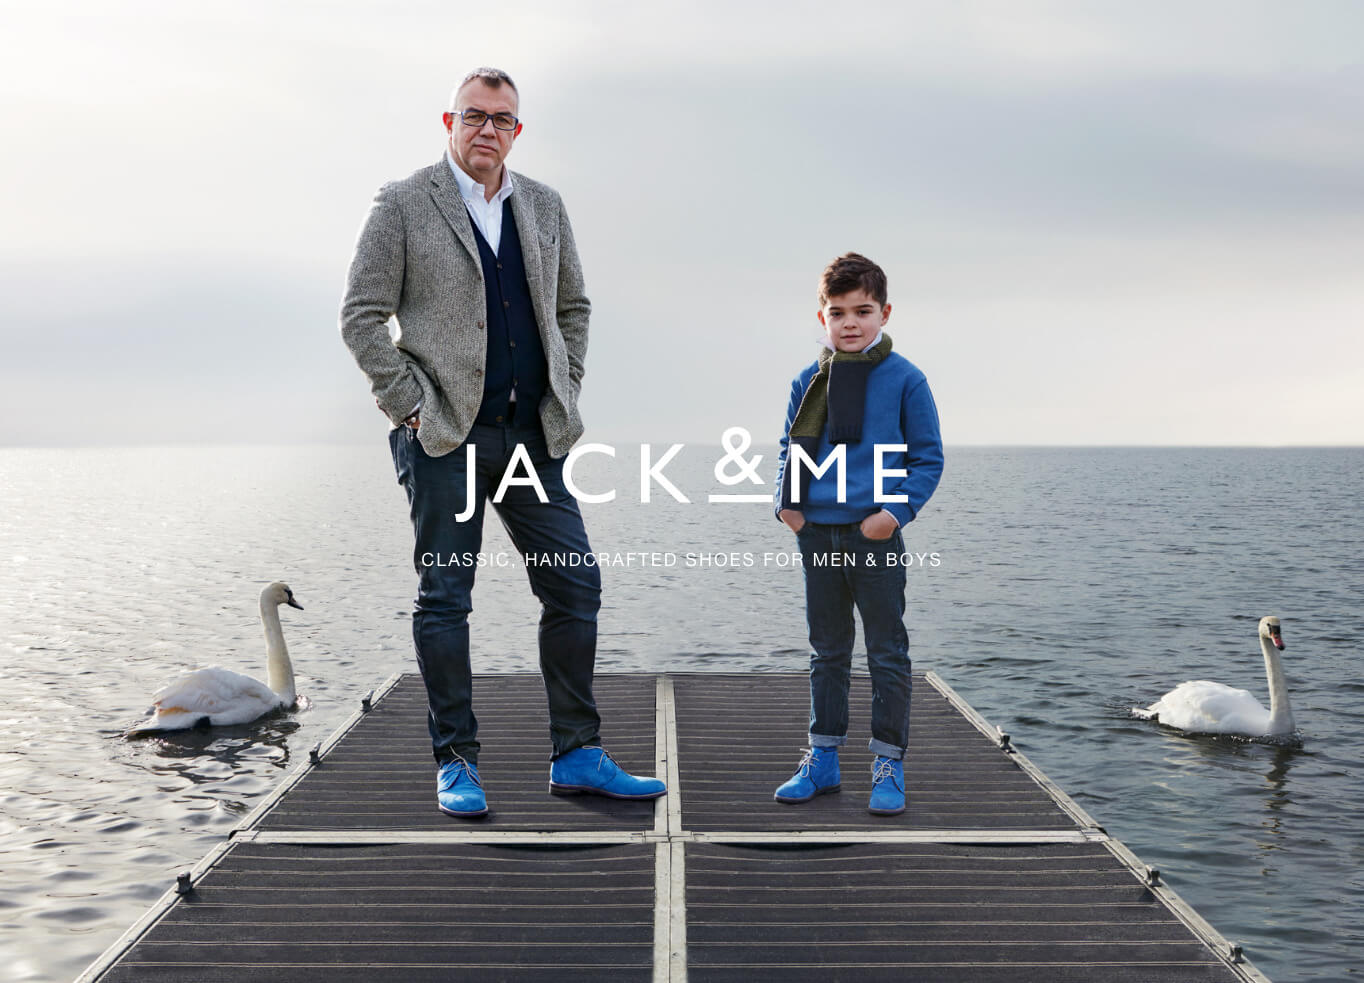 2019 – Jack&Me: WordPress Web Design